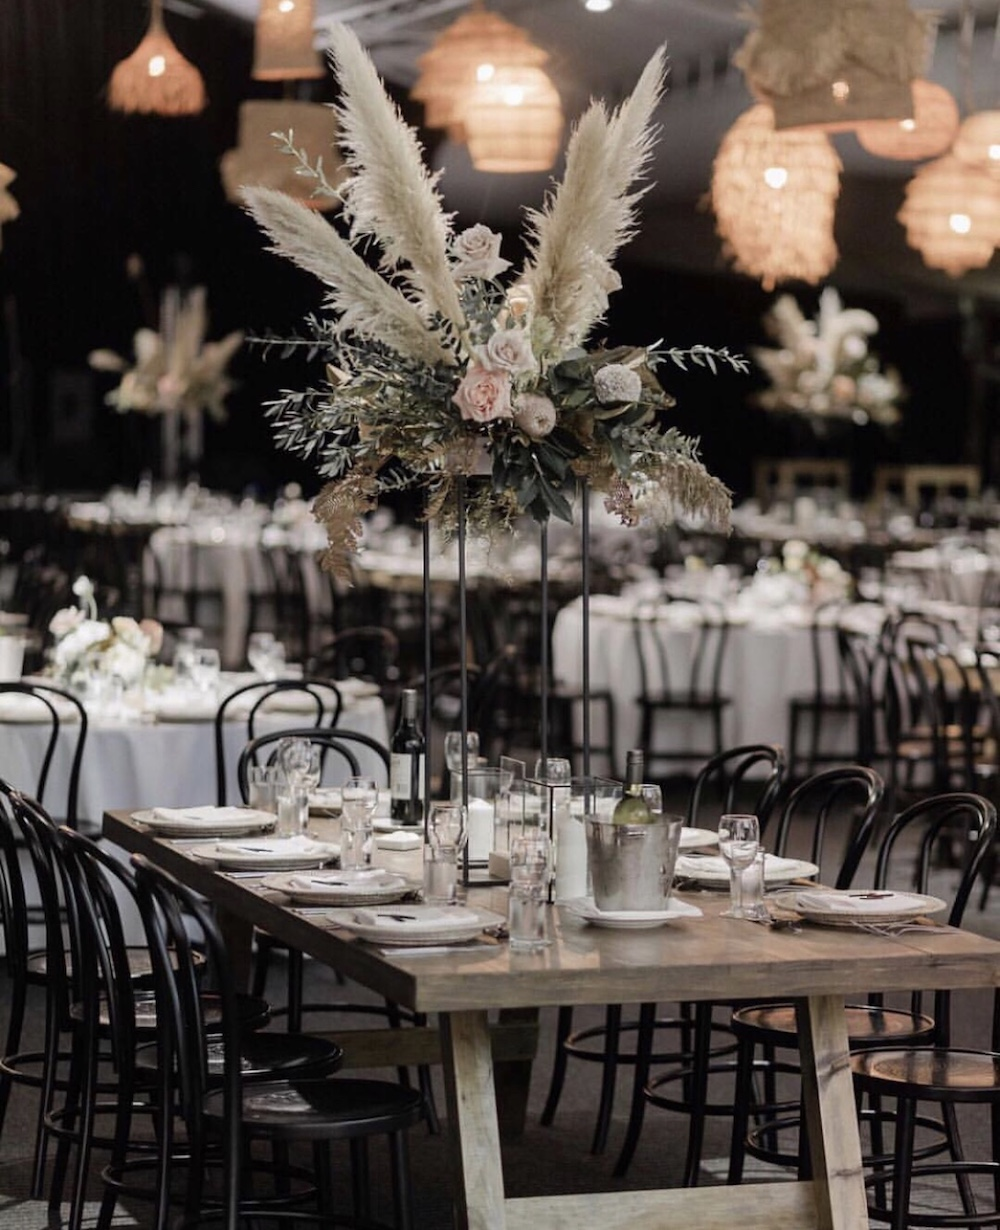 Christmas party styling ideas inspiration Hampton event hire4.jpg